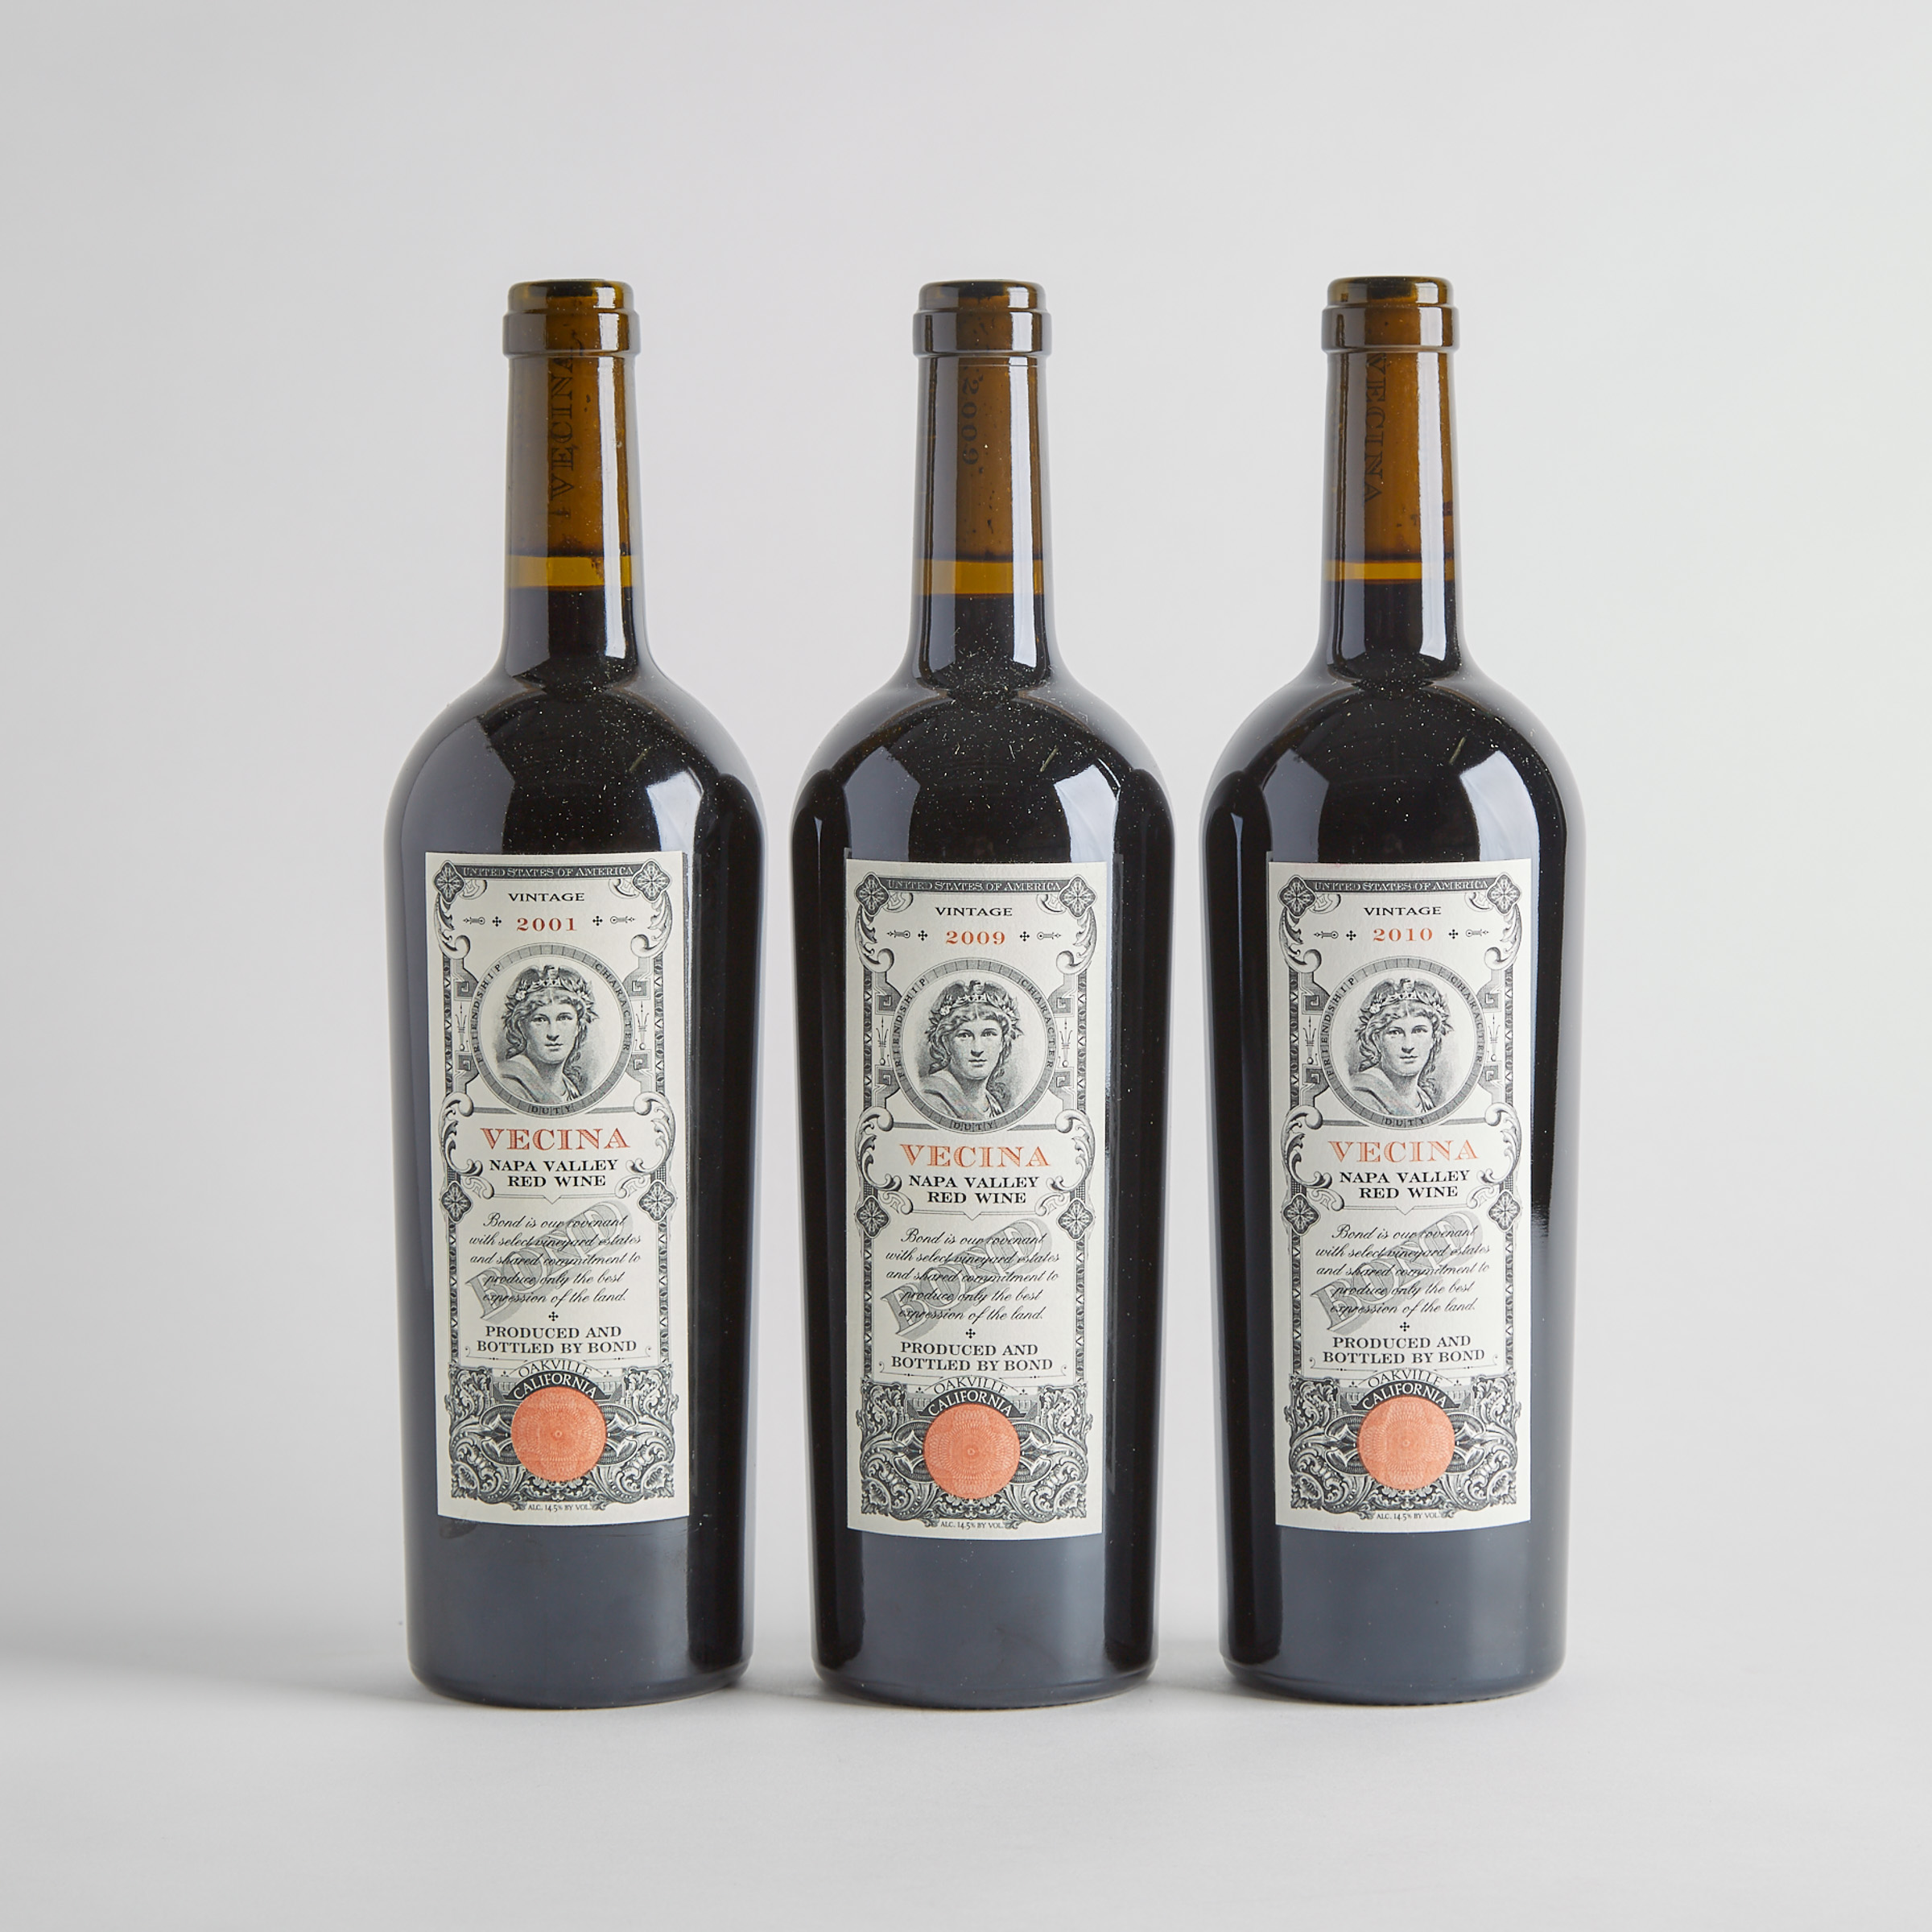 BOND ESTATES VECINA RED WINE 2001 (1) WA 96+ BOND ESTATES VECINA RED WINE 2009 (1) WA 98+ BOND ESTATES VECINA RED WINE 2010 (1) WA 99